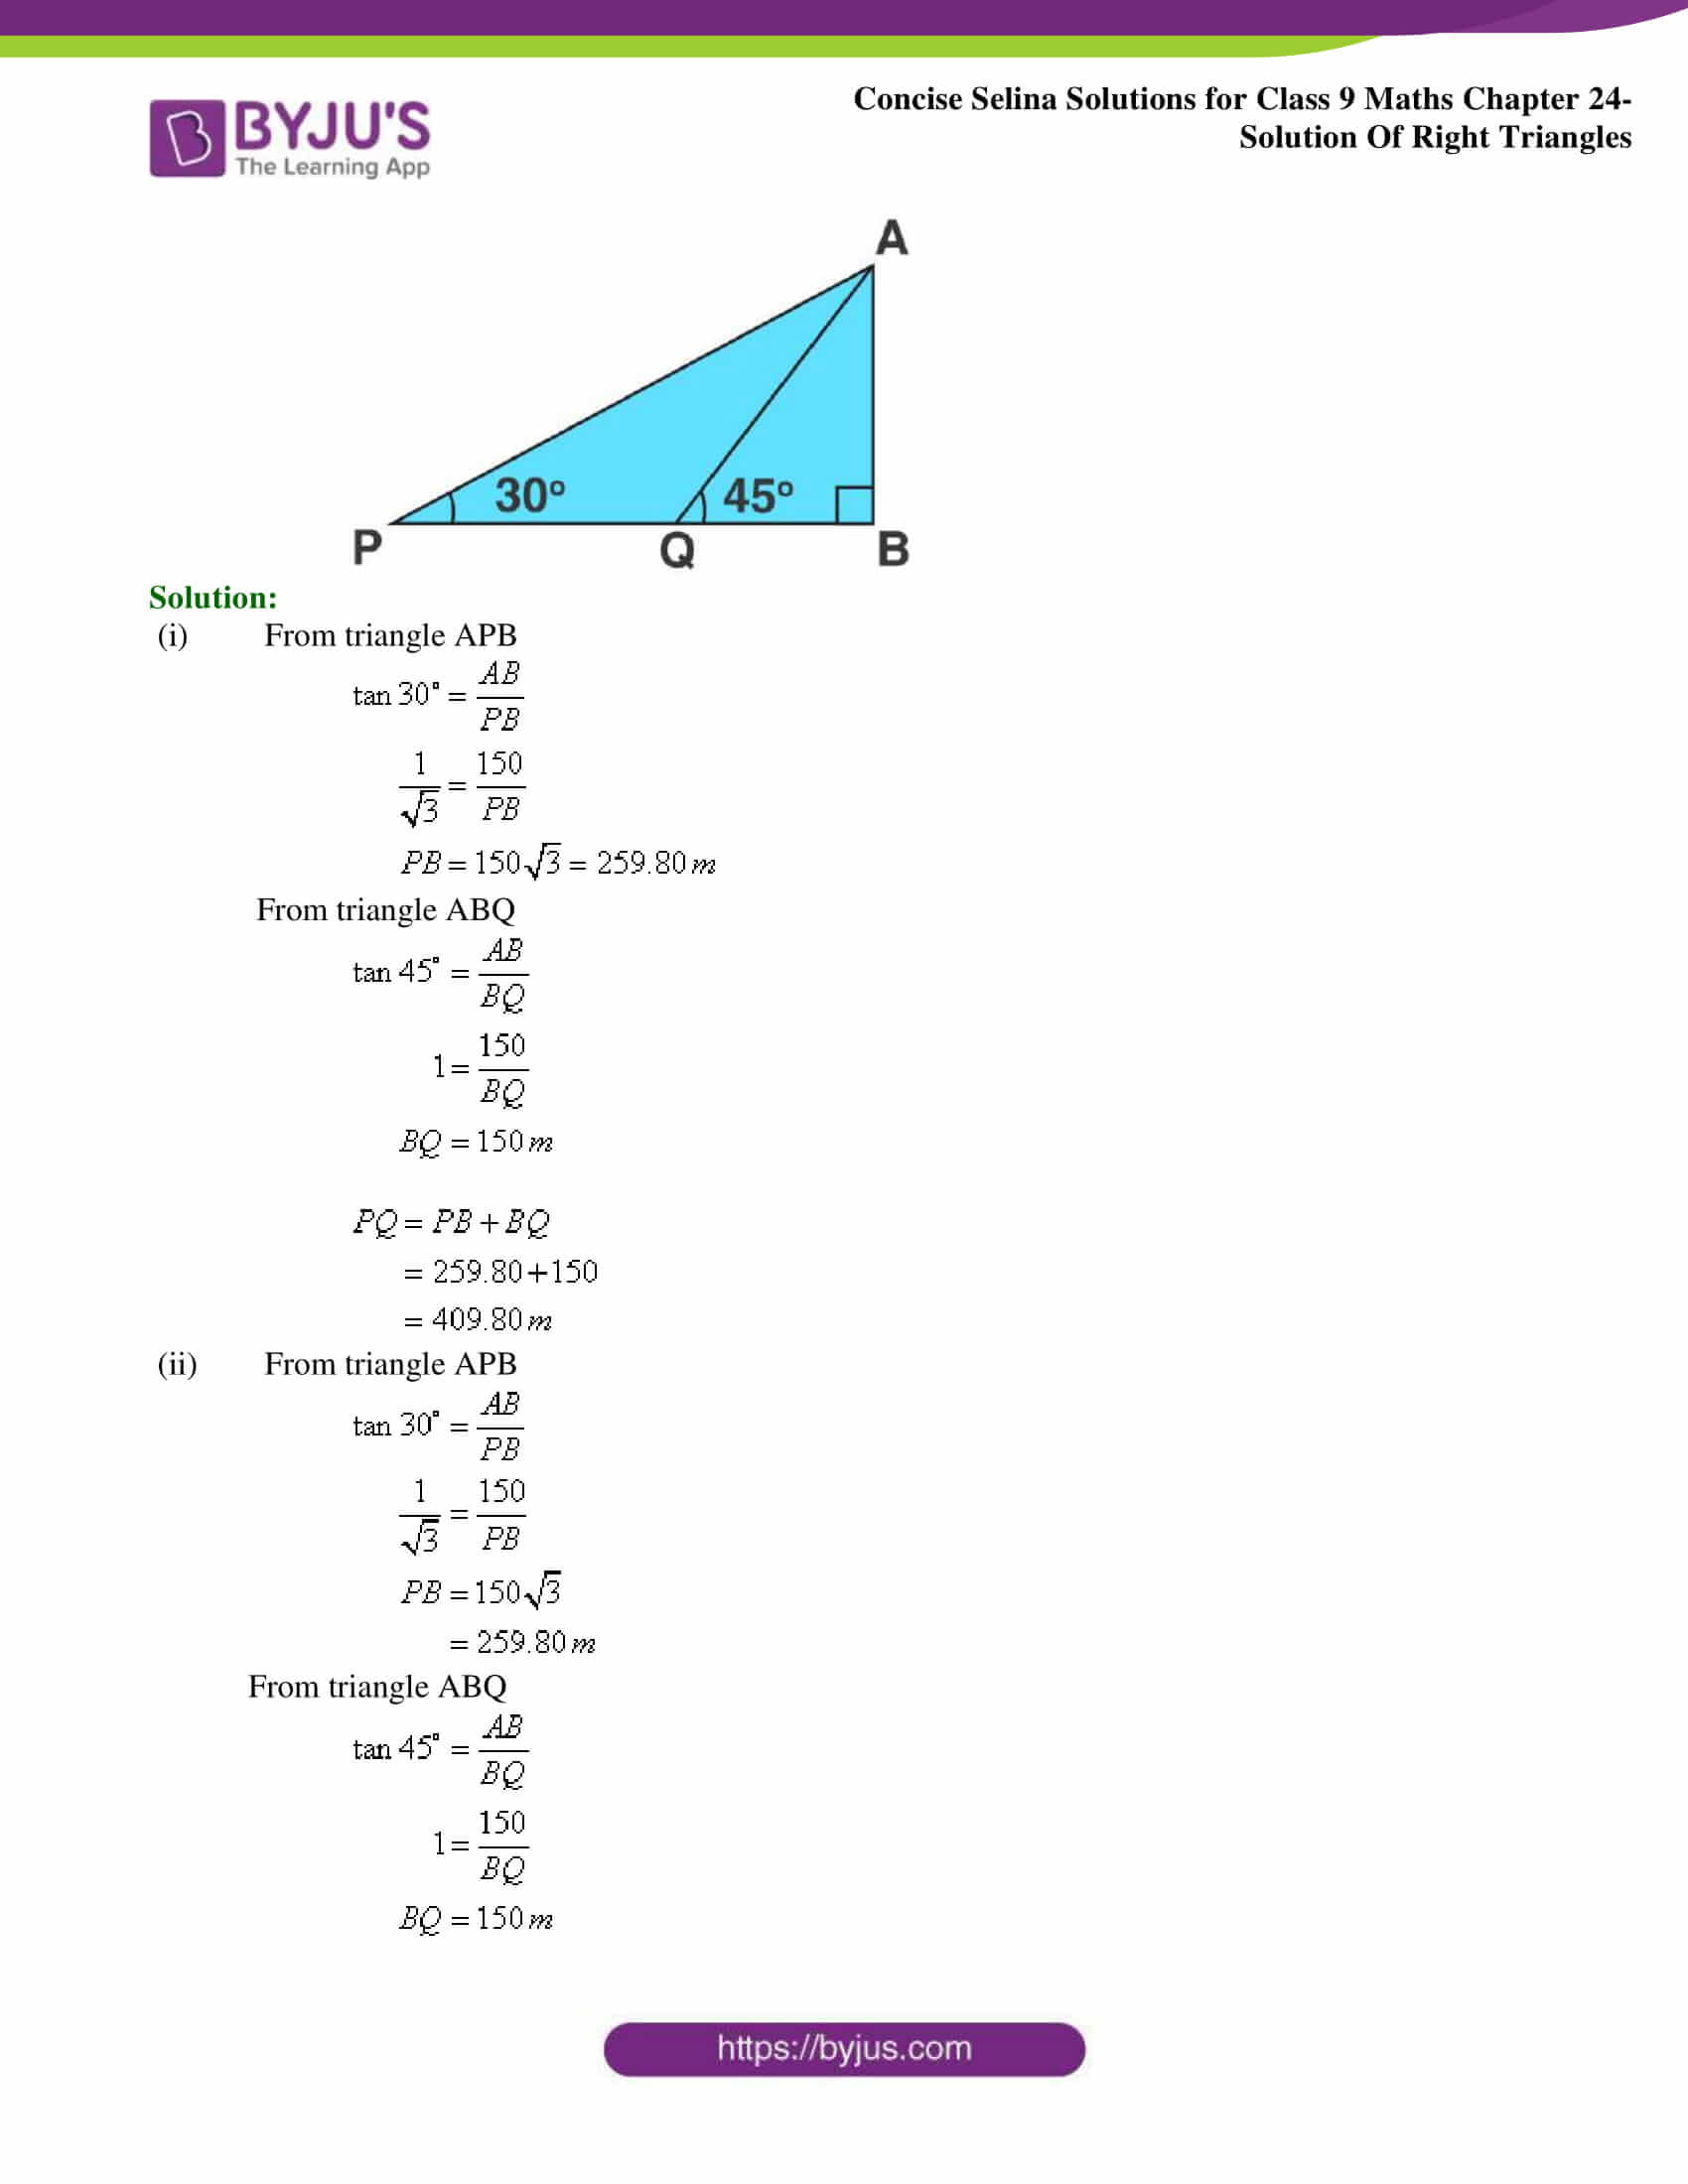 Concise Selina Solutions Class 9 Maths Chapter 24 Solution Of Right Triangles part 21